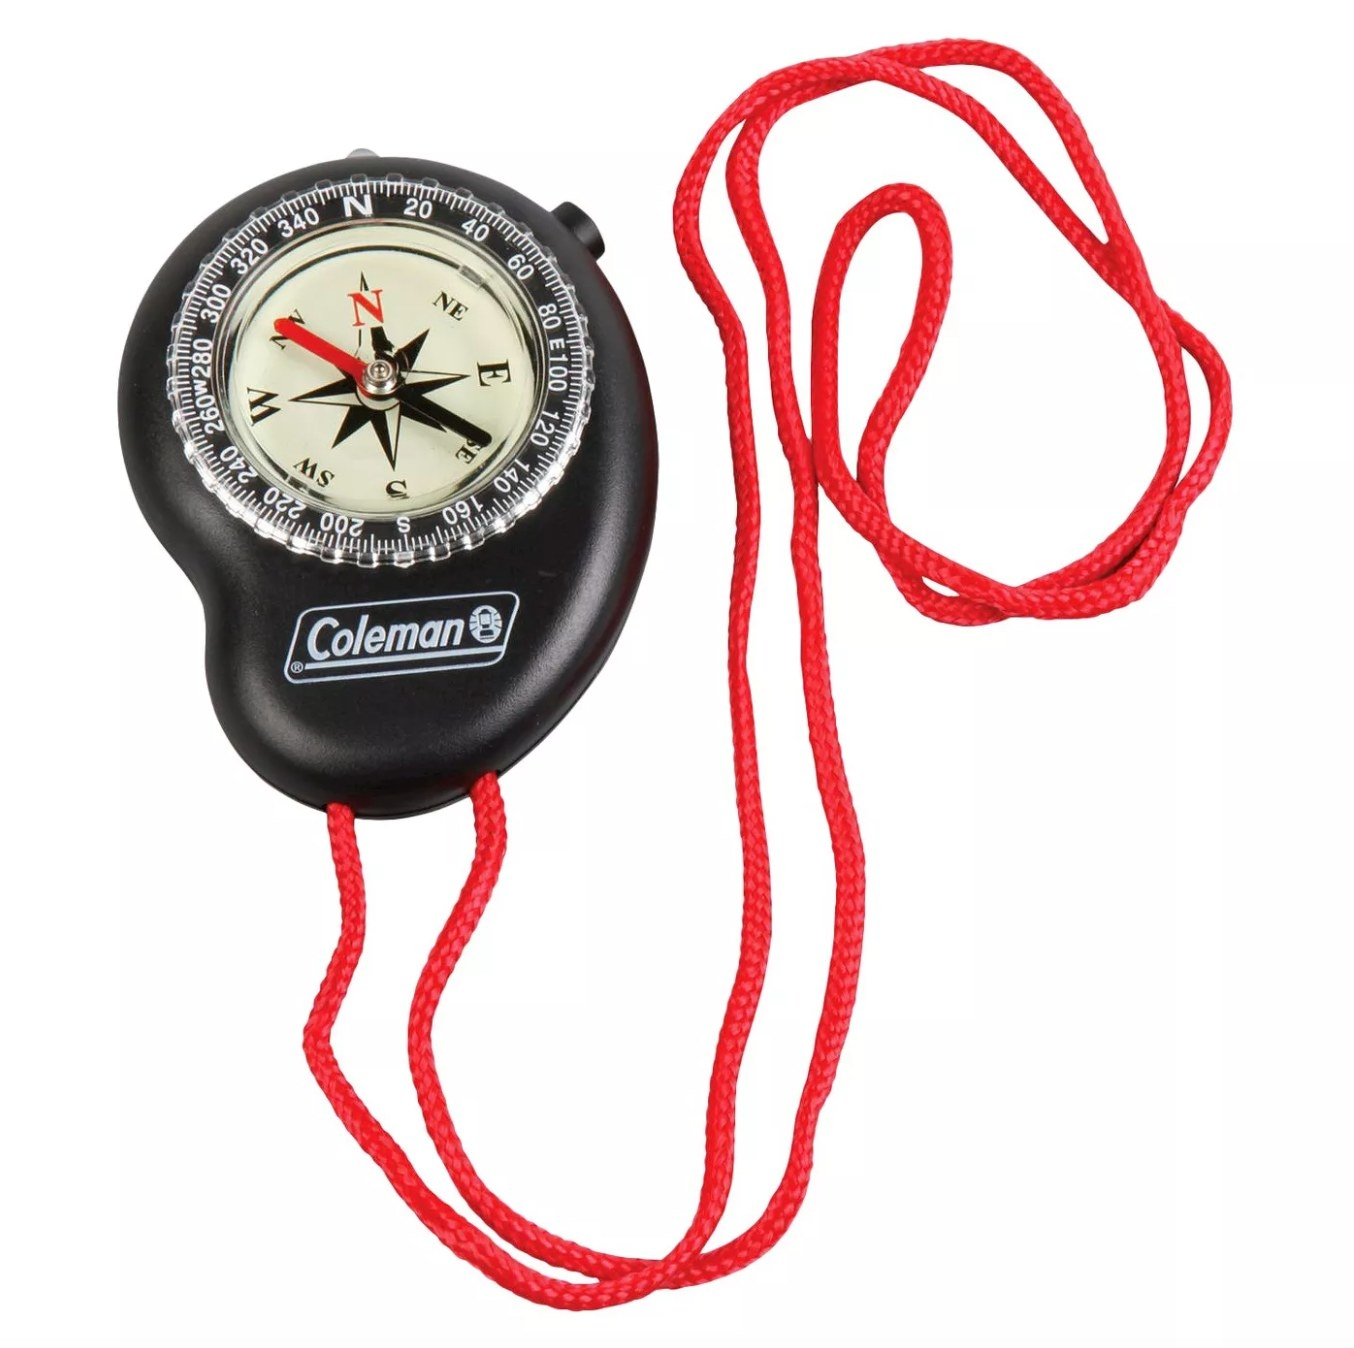 The compass with necklace attachment